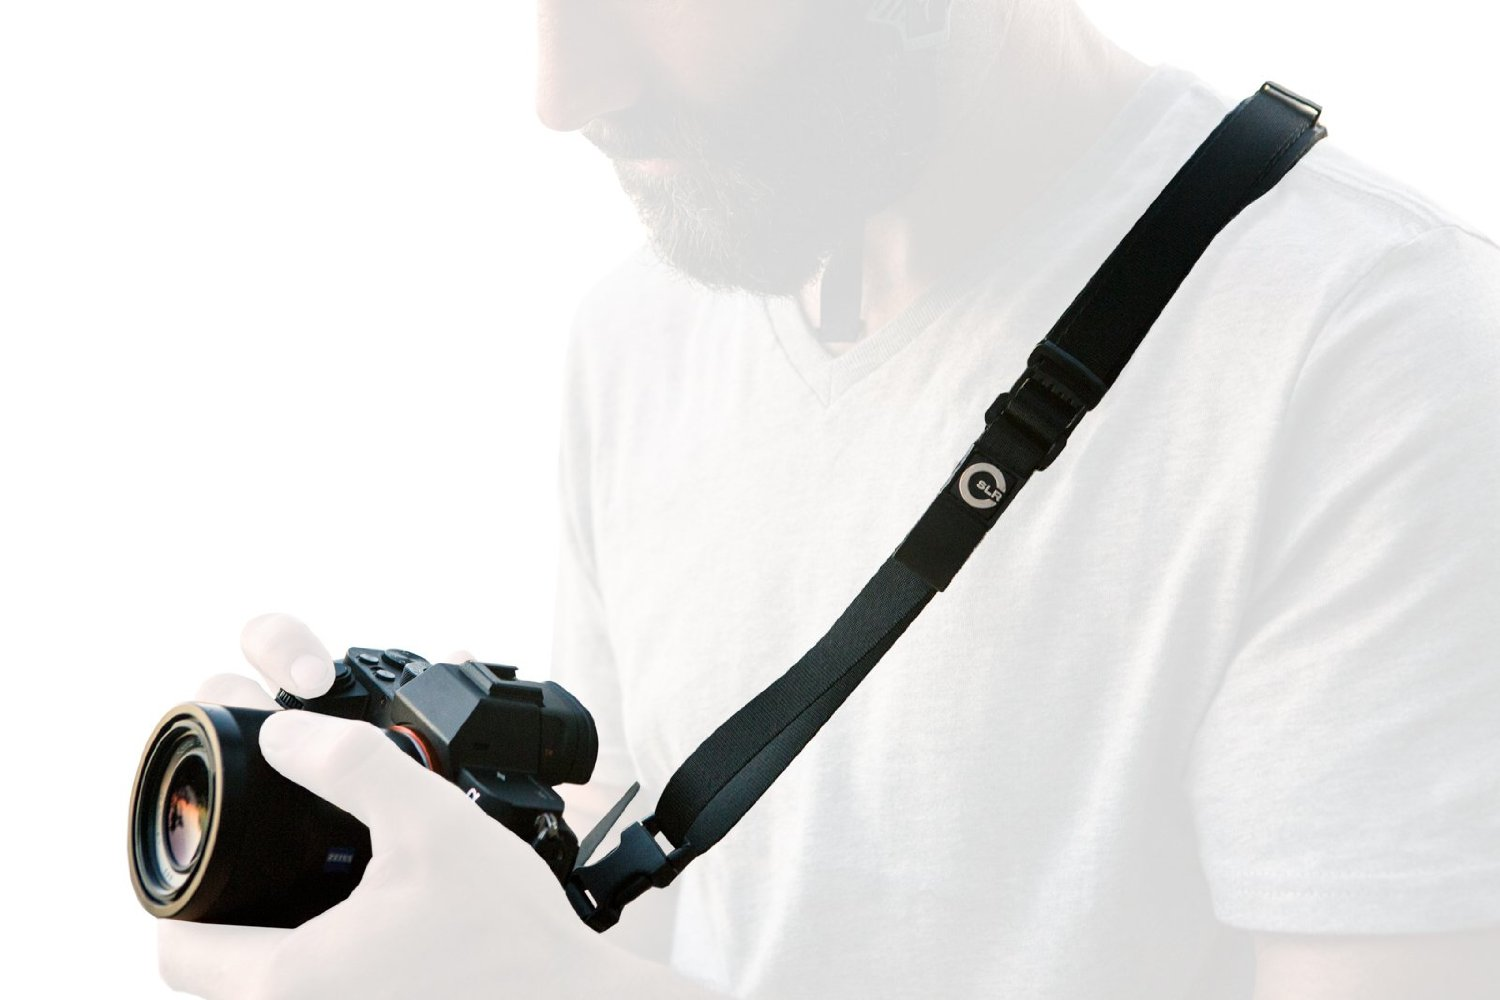 Custom SLR Slim Strap - Genuine Leather Camera Sling, Shoulder, Neck Strap for Mirrorless, Micro Four Thirds, Compact Cameras. Camera strap only. C-Loop Mini purchased separately.